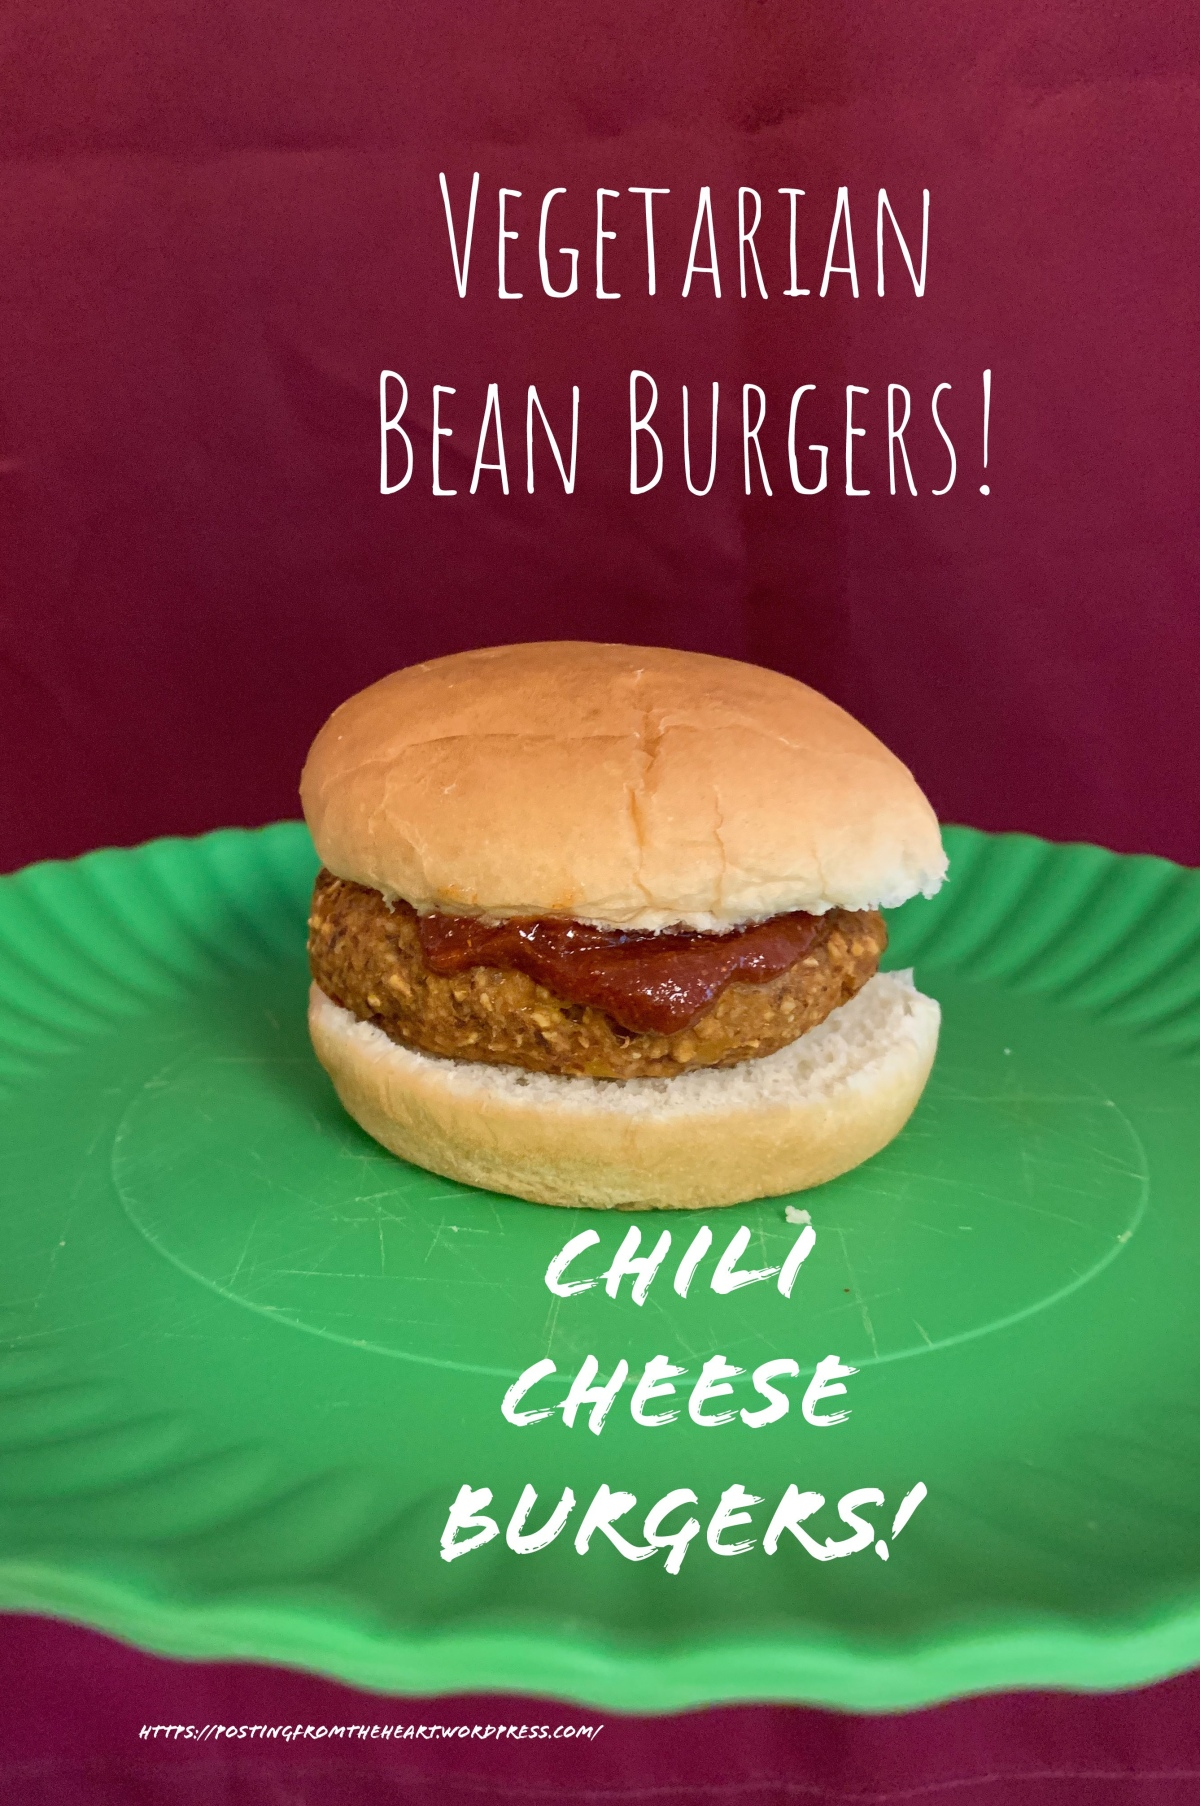 Vegetarian Bean Burgers: Chili Cheese Burgers!